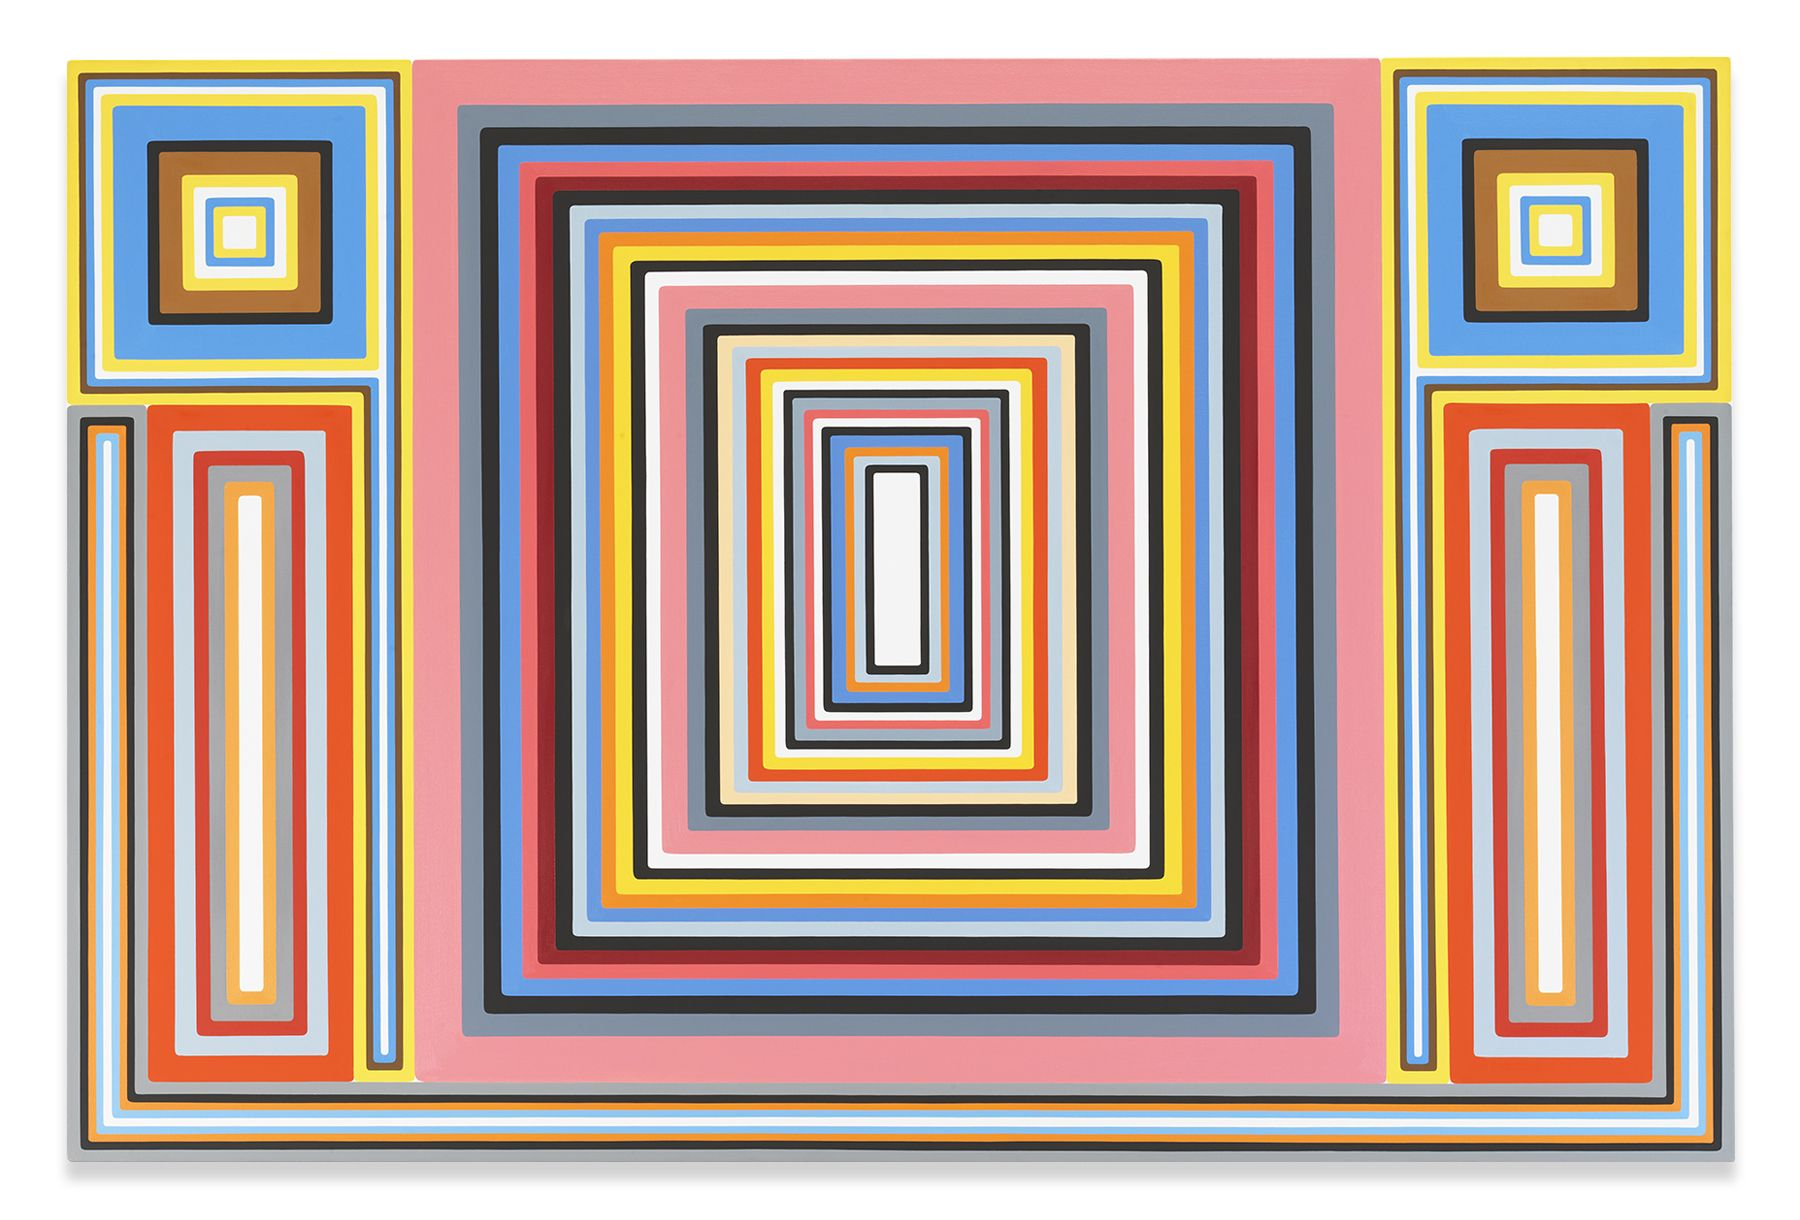 Outer Limits, 2012, Oil on canvas, 48 x 72 1/8 inches, 121.9 x 183.2 cm, MMG#31070